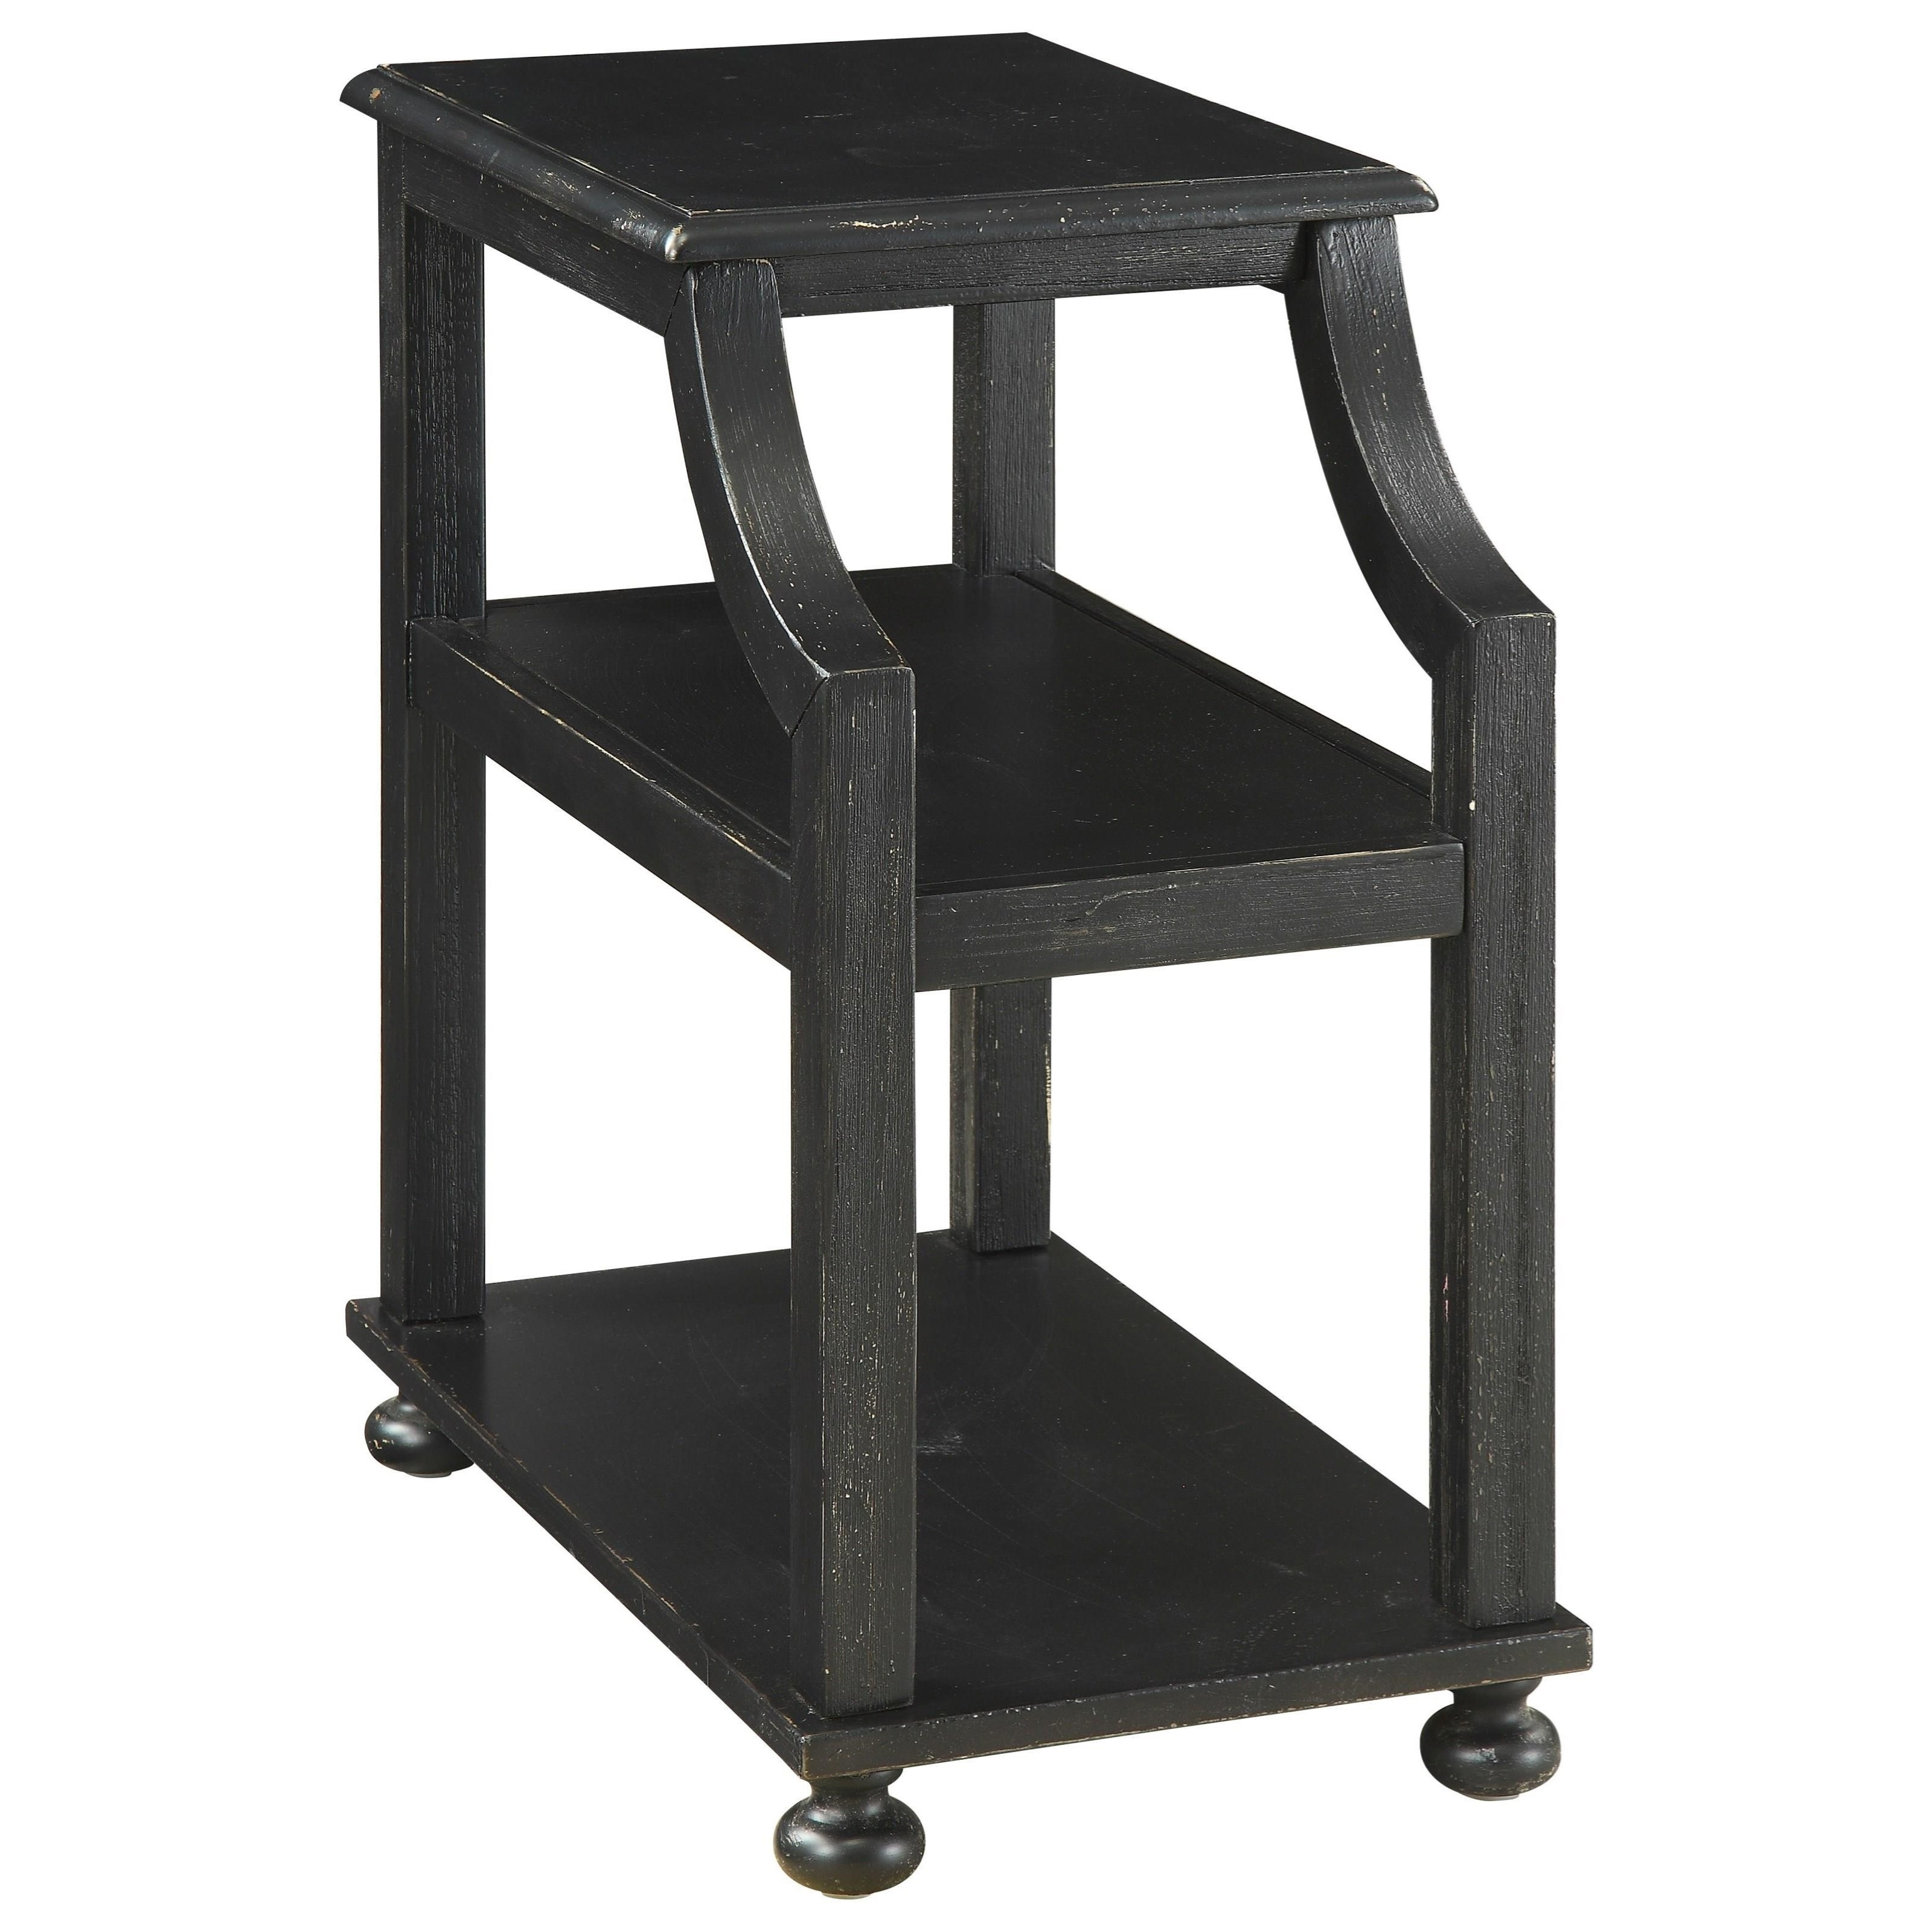 C2C Accents Chairside Accent Table by C2C at Walker's Furniture